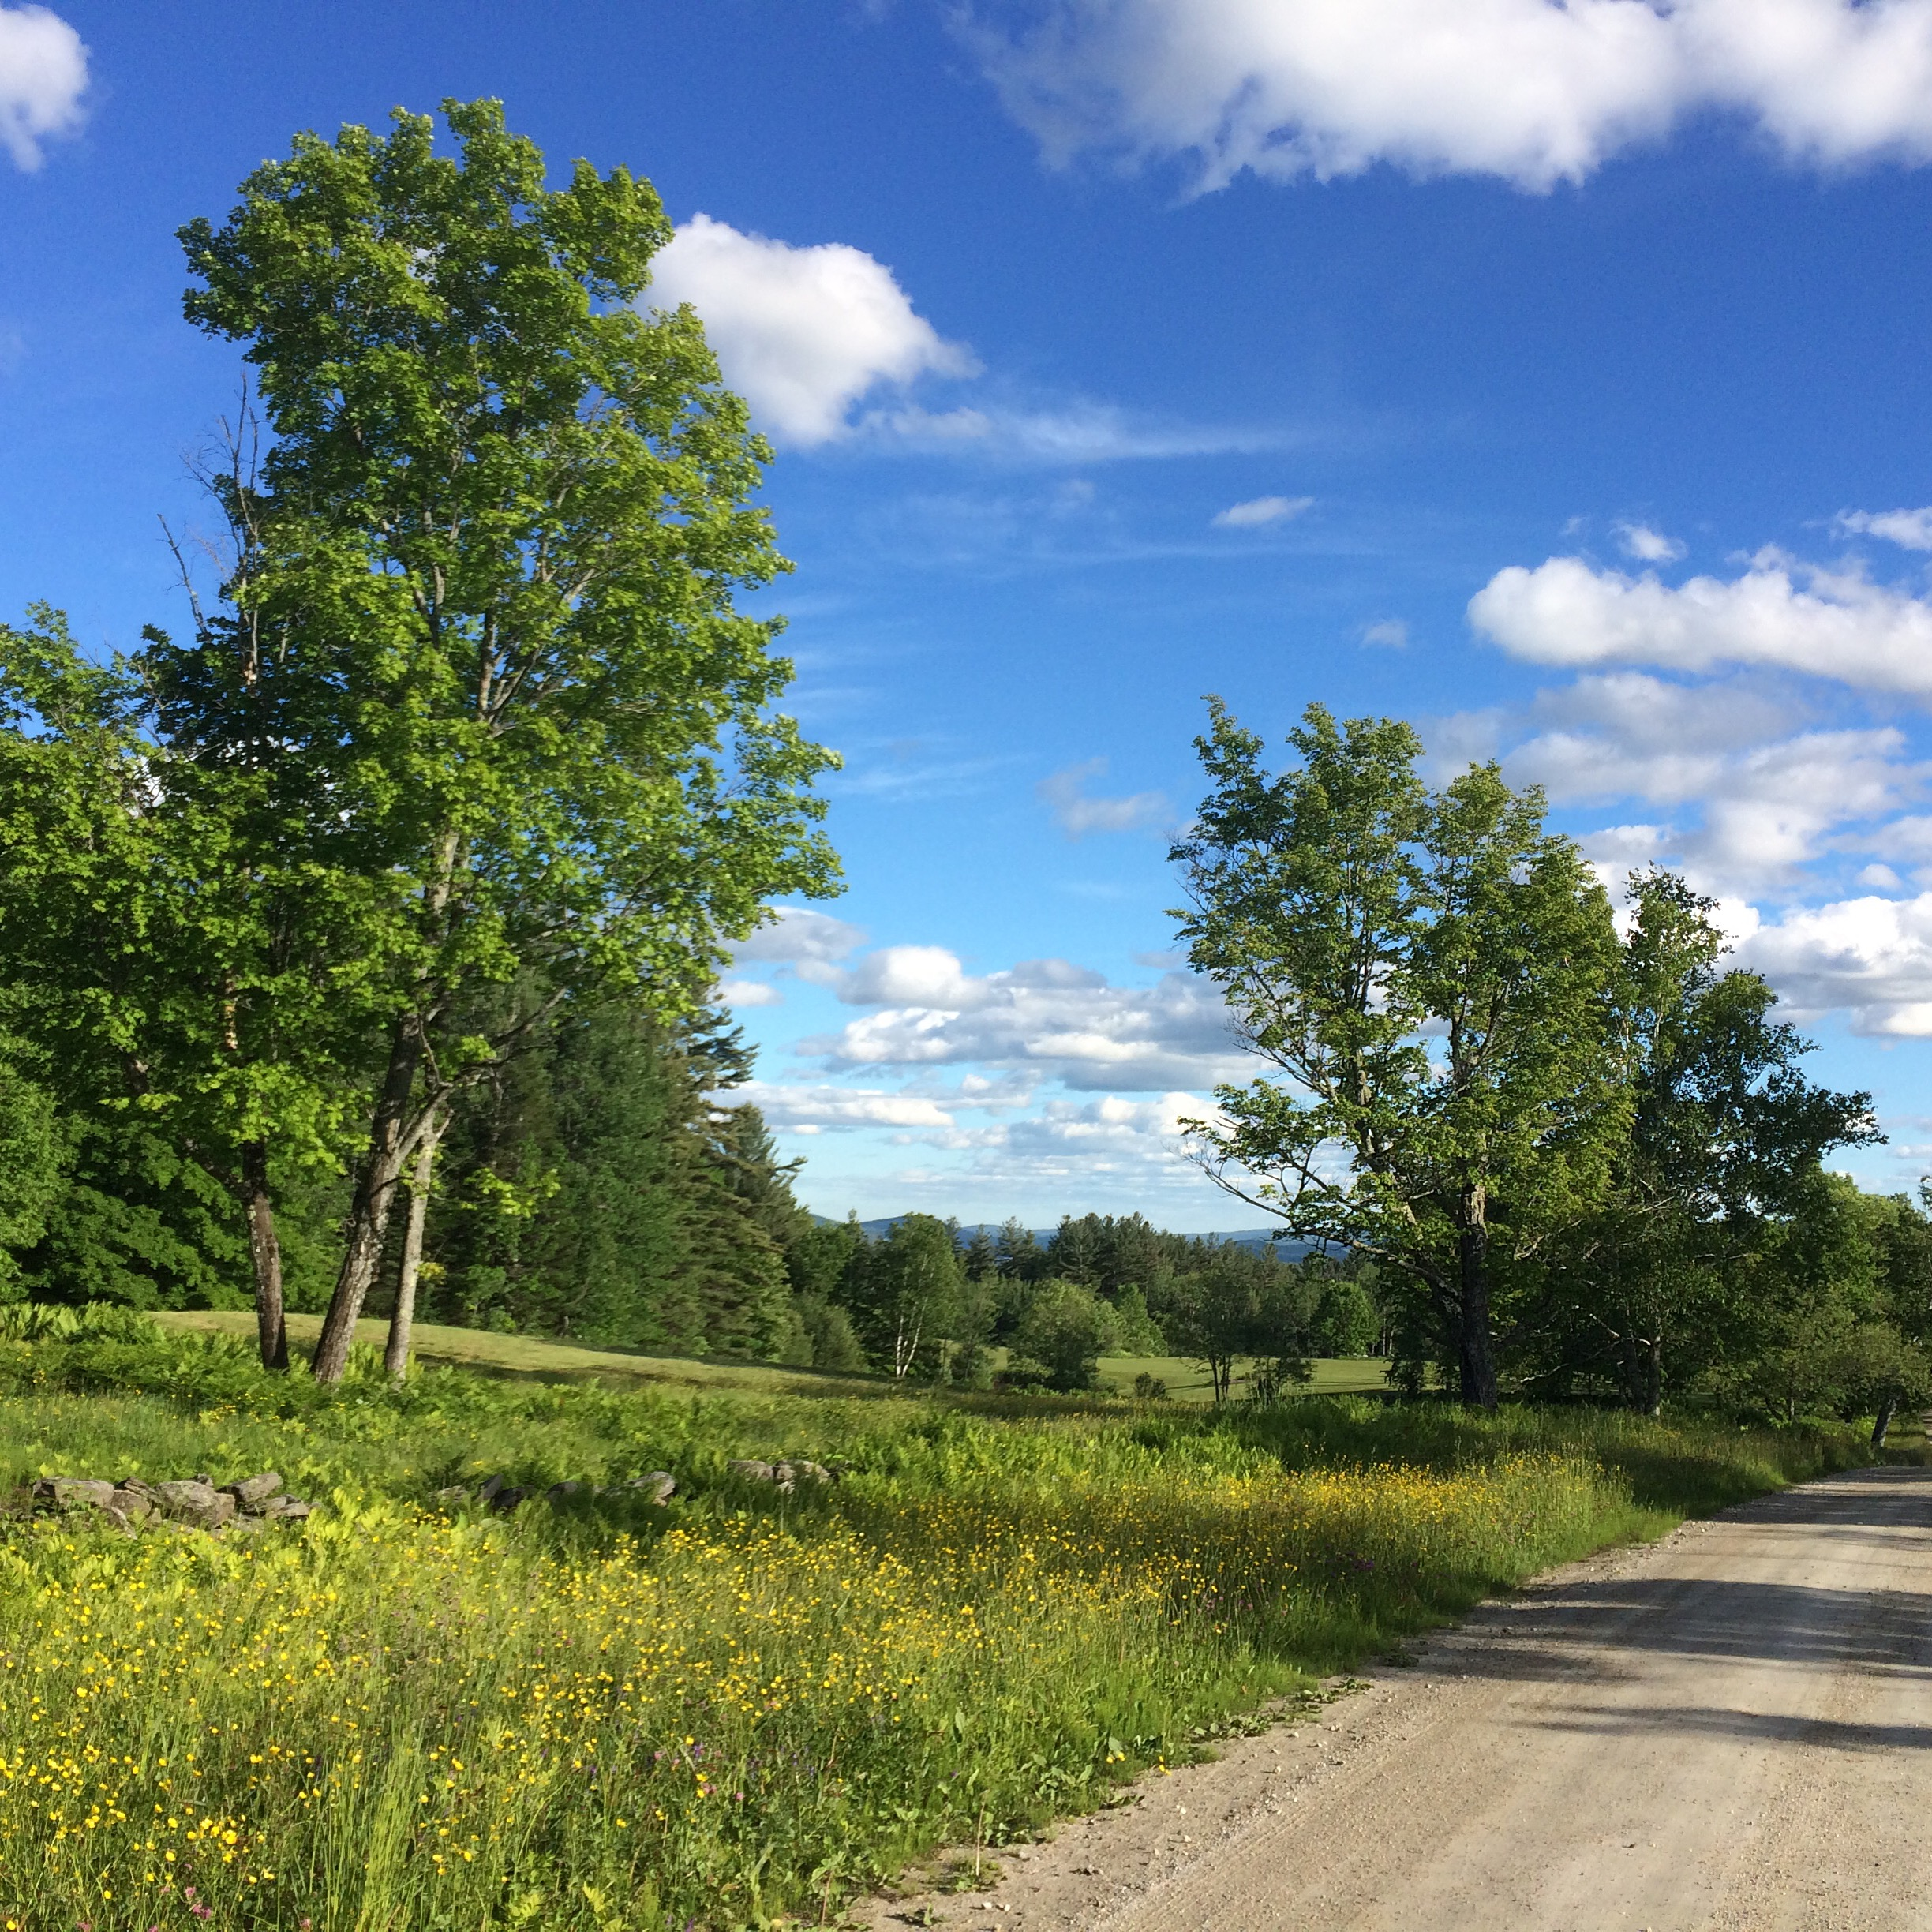 Cody Road in Landgrove Offer Beautiful Summer Views